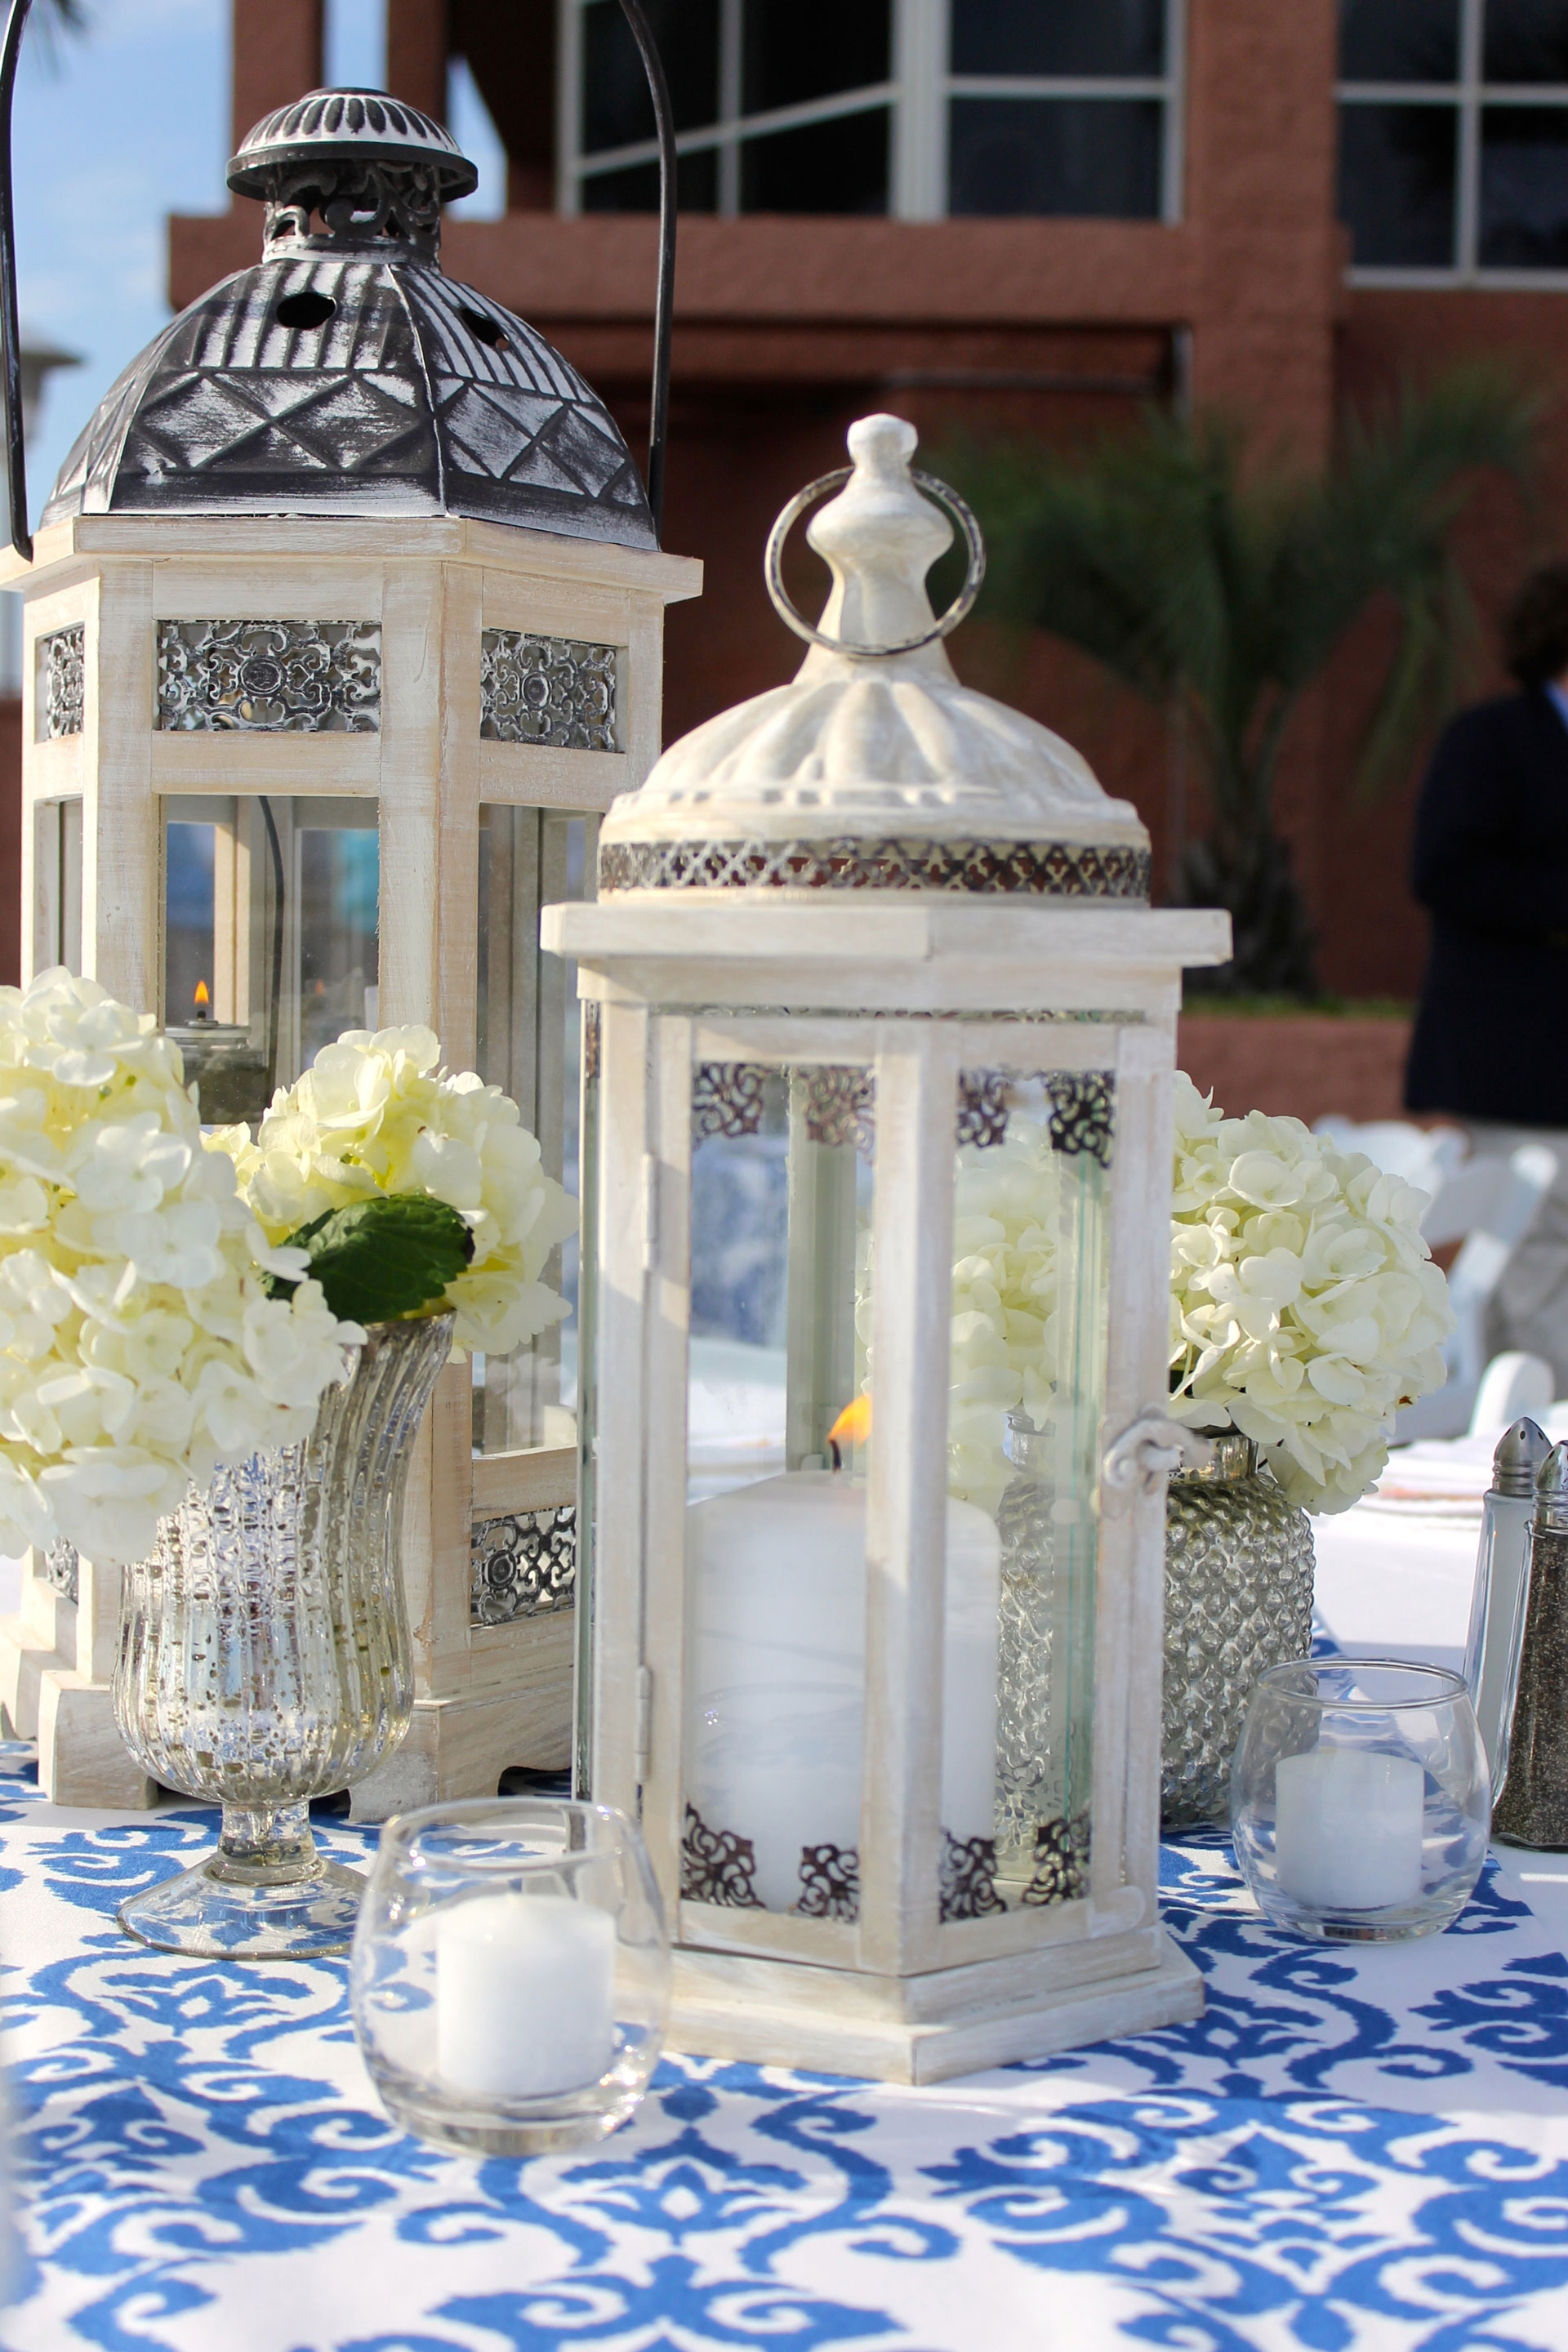 wedding table decor featuring white lanterns with white votive candles